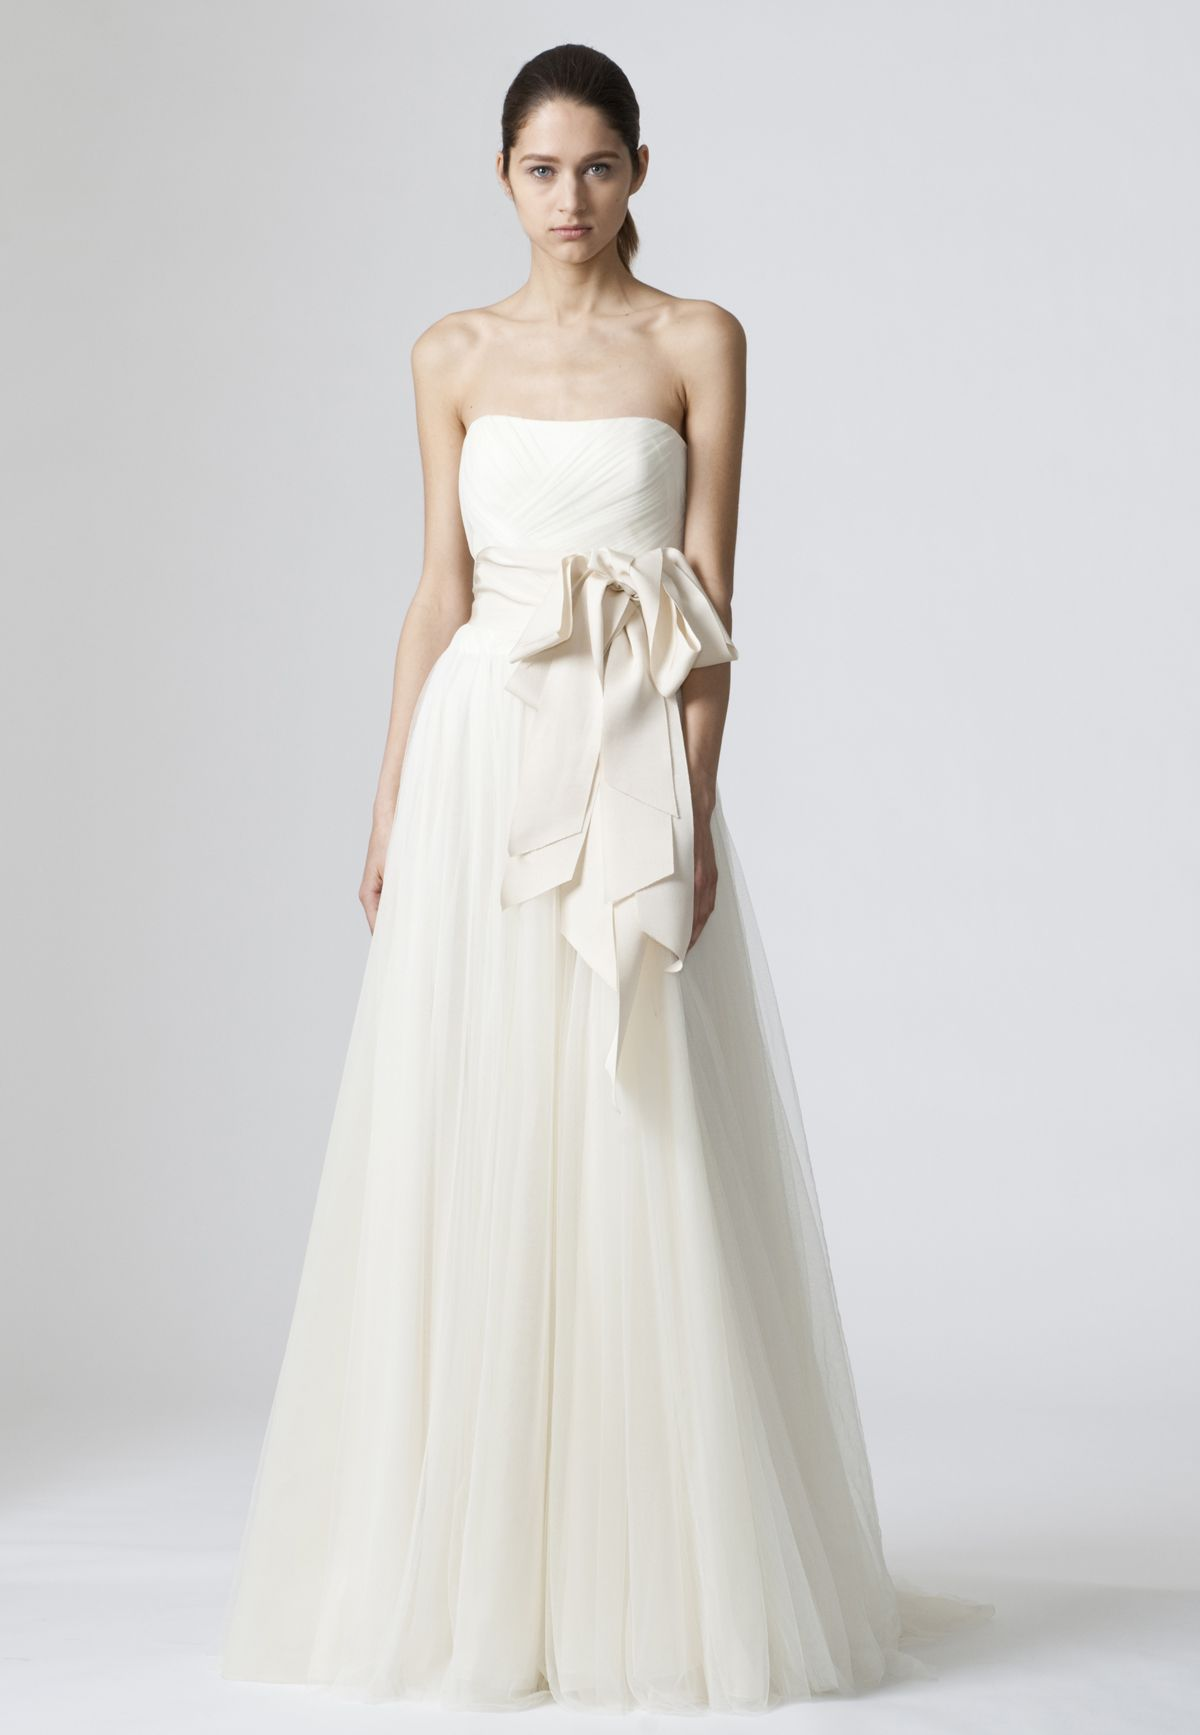 14 Elegant Wedding Gowns to Make Your Big Day Special   Bridal ...